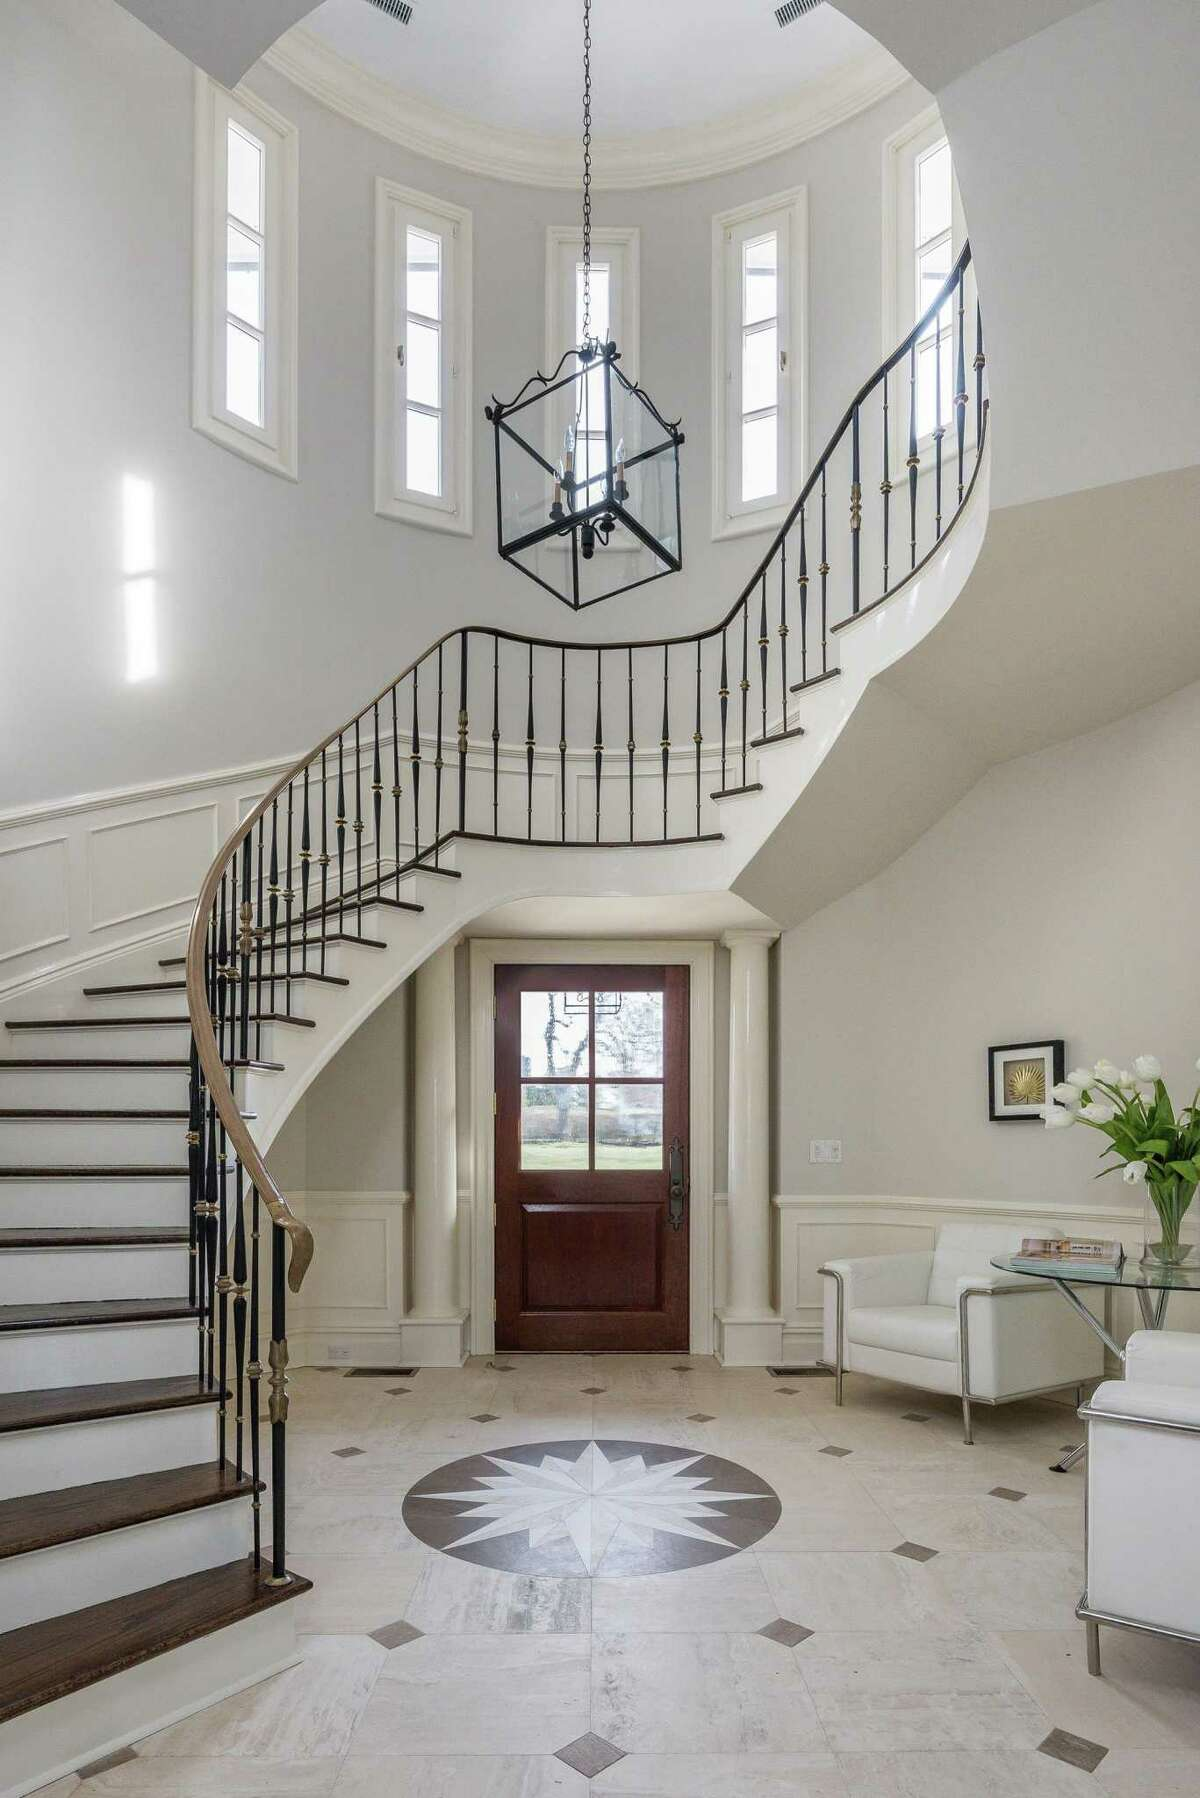 The entrance hall at the Darien home soars 24 feet high with a marble floor.